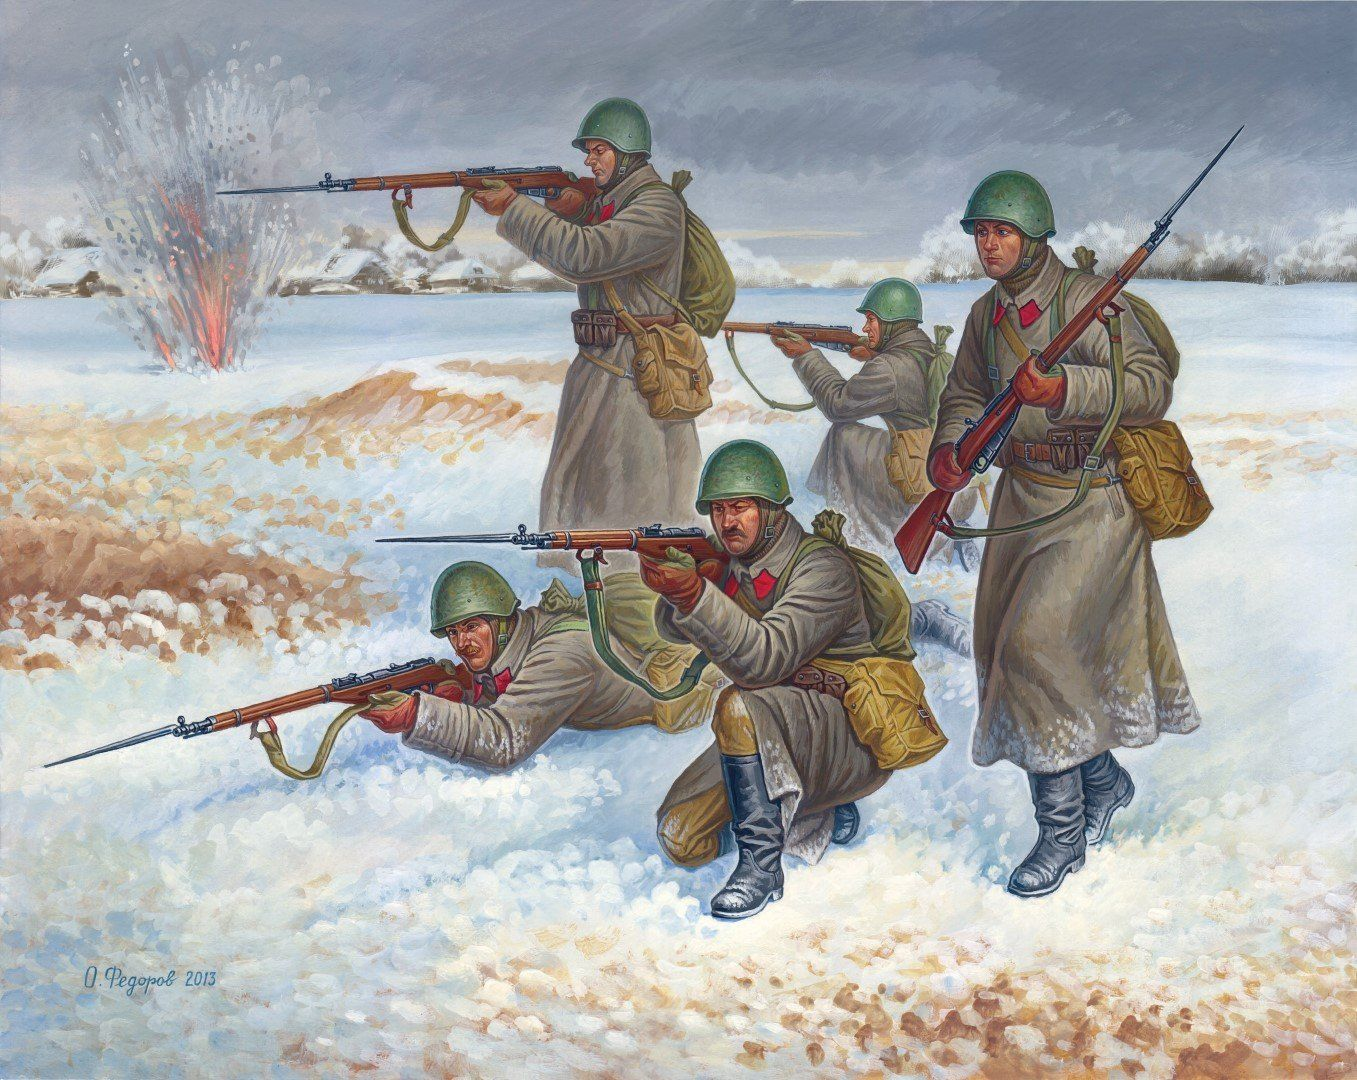 19411943 Soviet Red Army enlisted infantrymen's winter